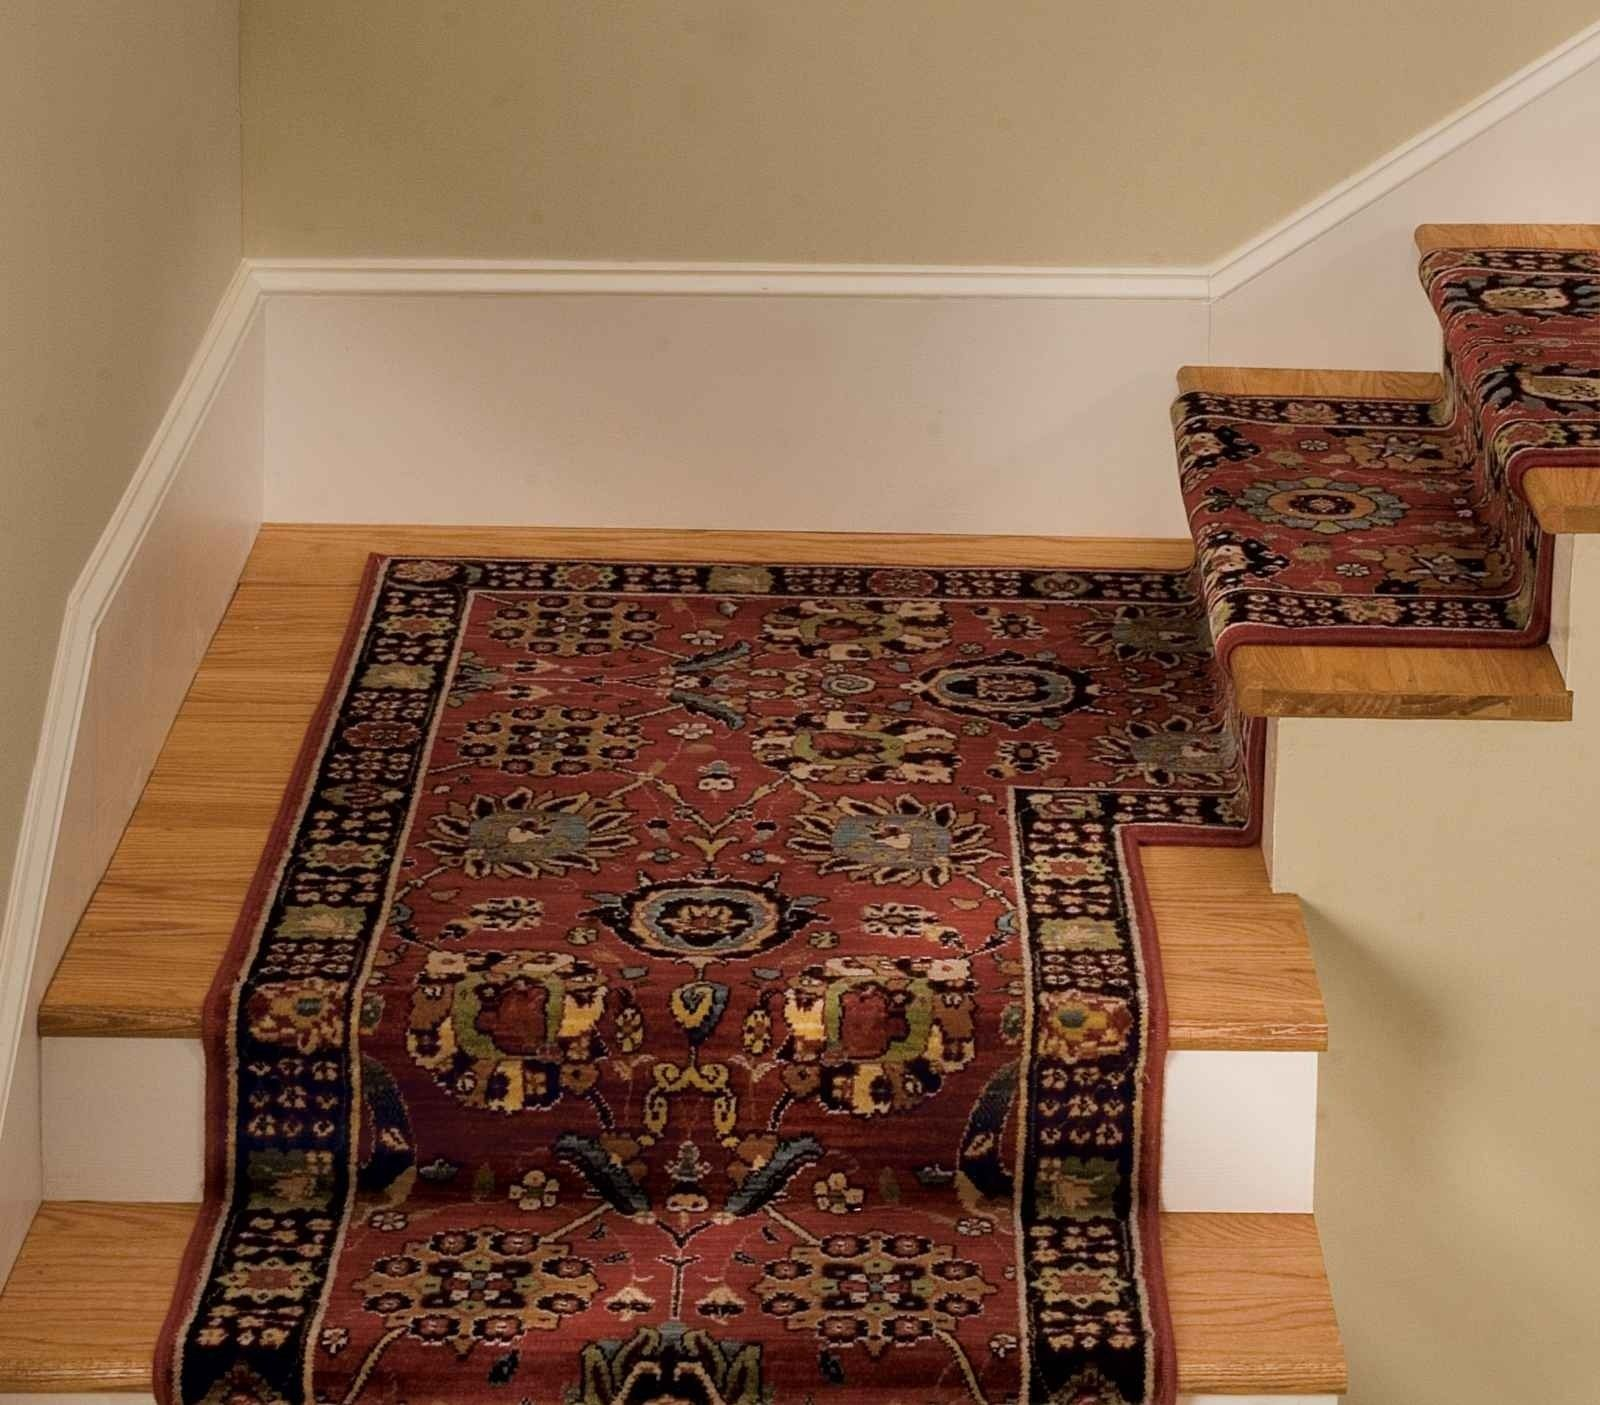 All About Traditional Stair Runners Carpet Hallway Runners Regarding Stair Runner Carpet Install A Stair Runner Stair Runner Carpet Carpet Stairs Stair Runner